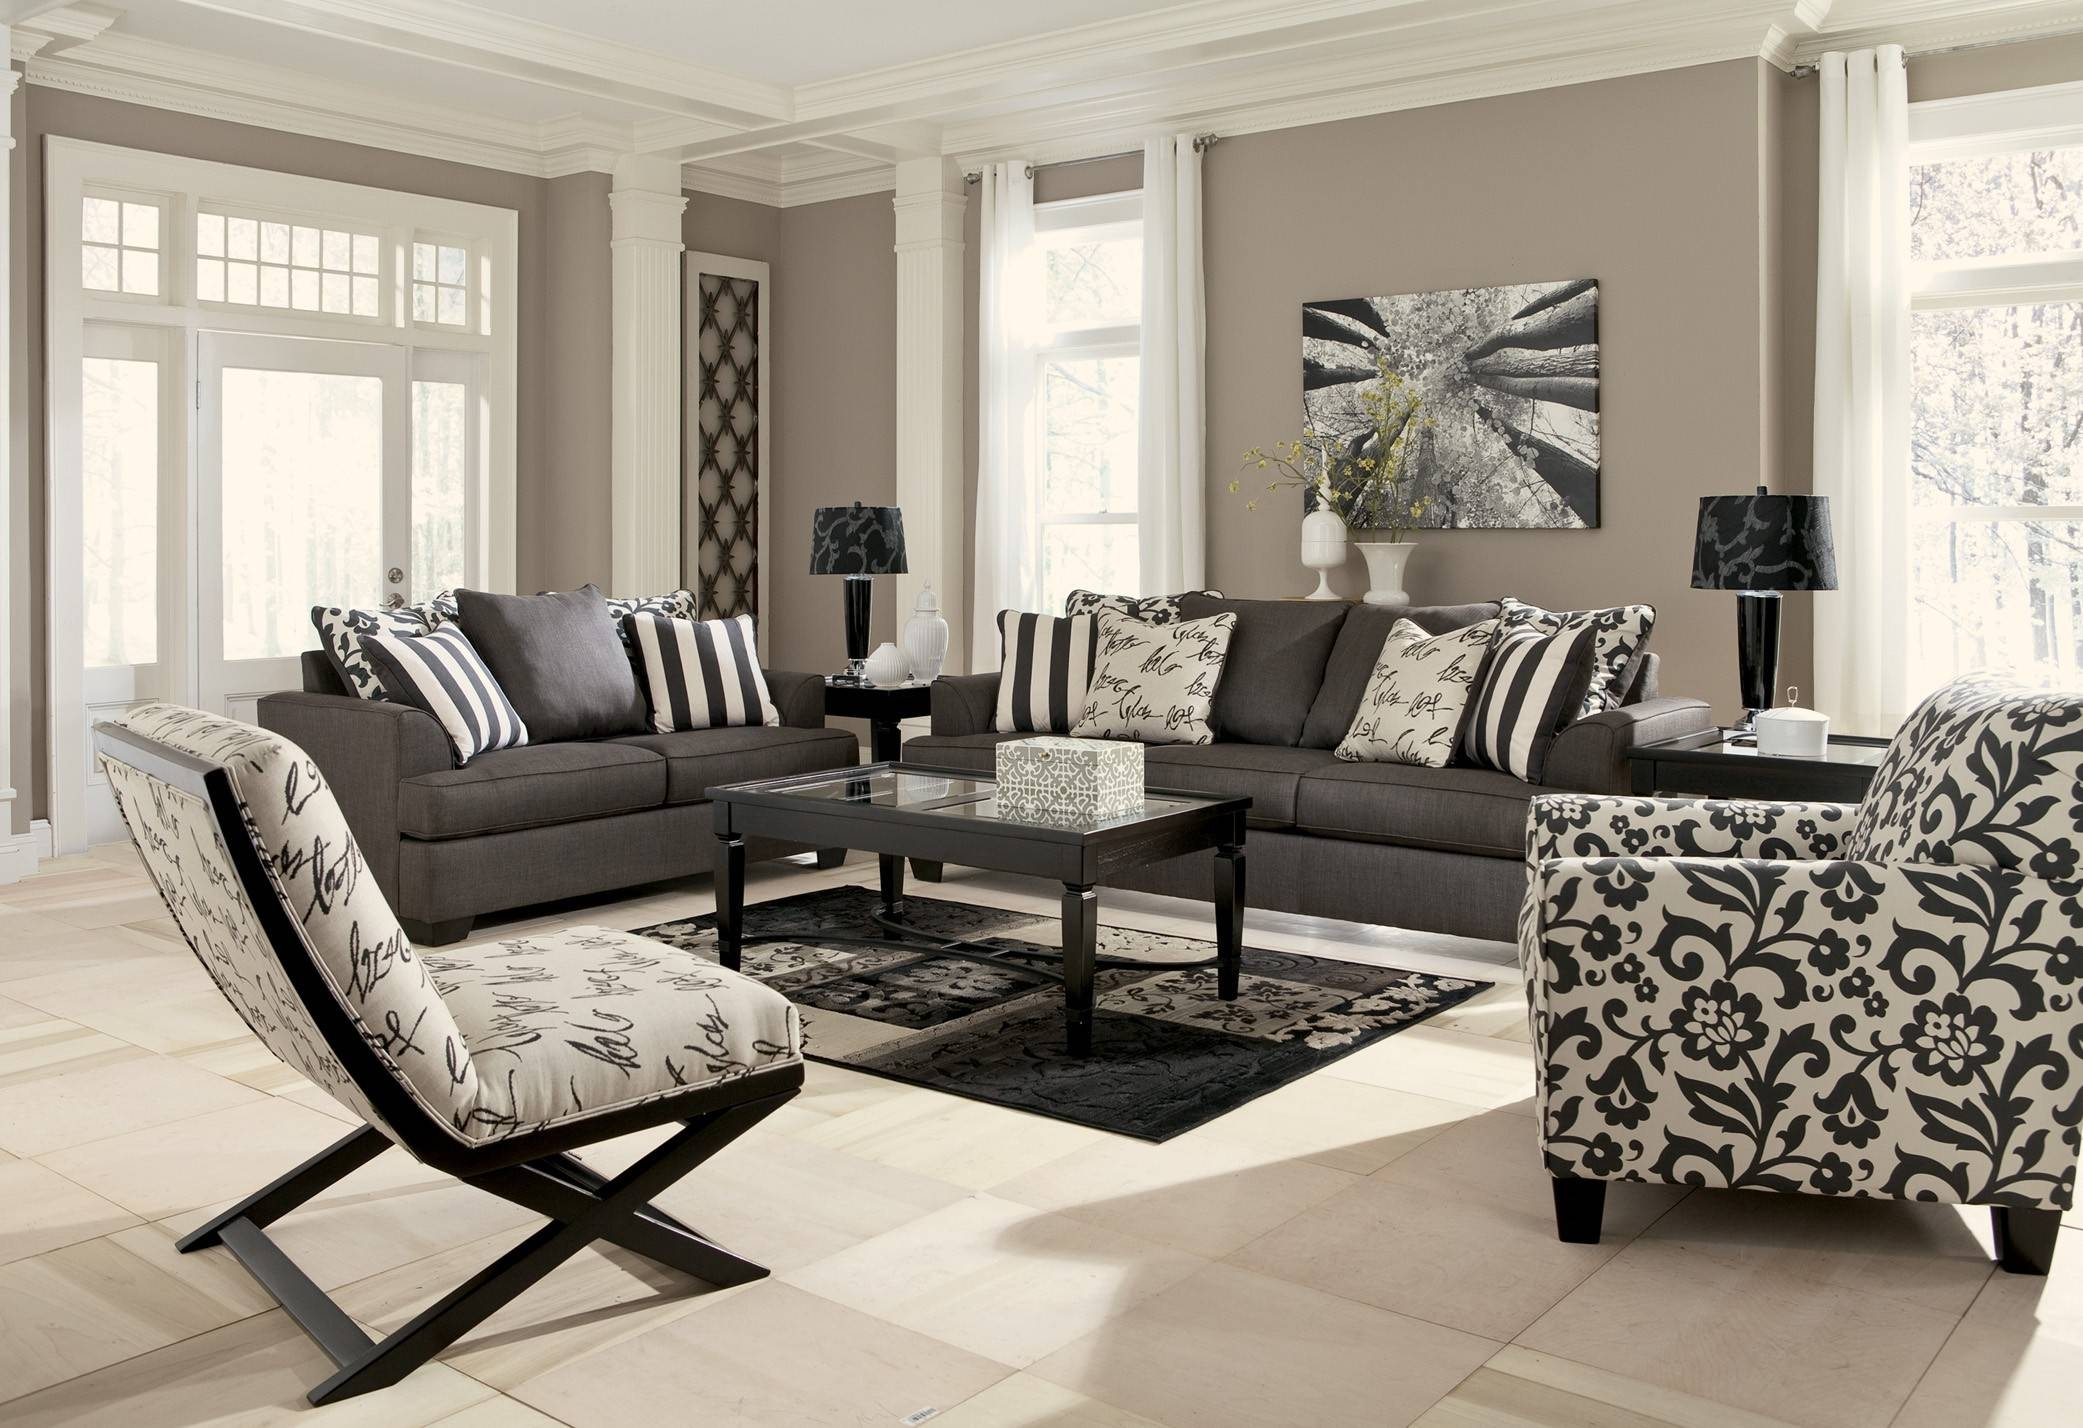 Flannel Gray Living Room Sets - Carameloffers with regard to Sofa and Accent Chair Set (Image 17 of 30)